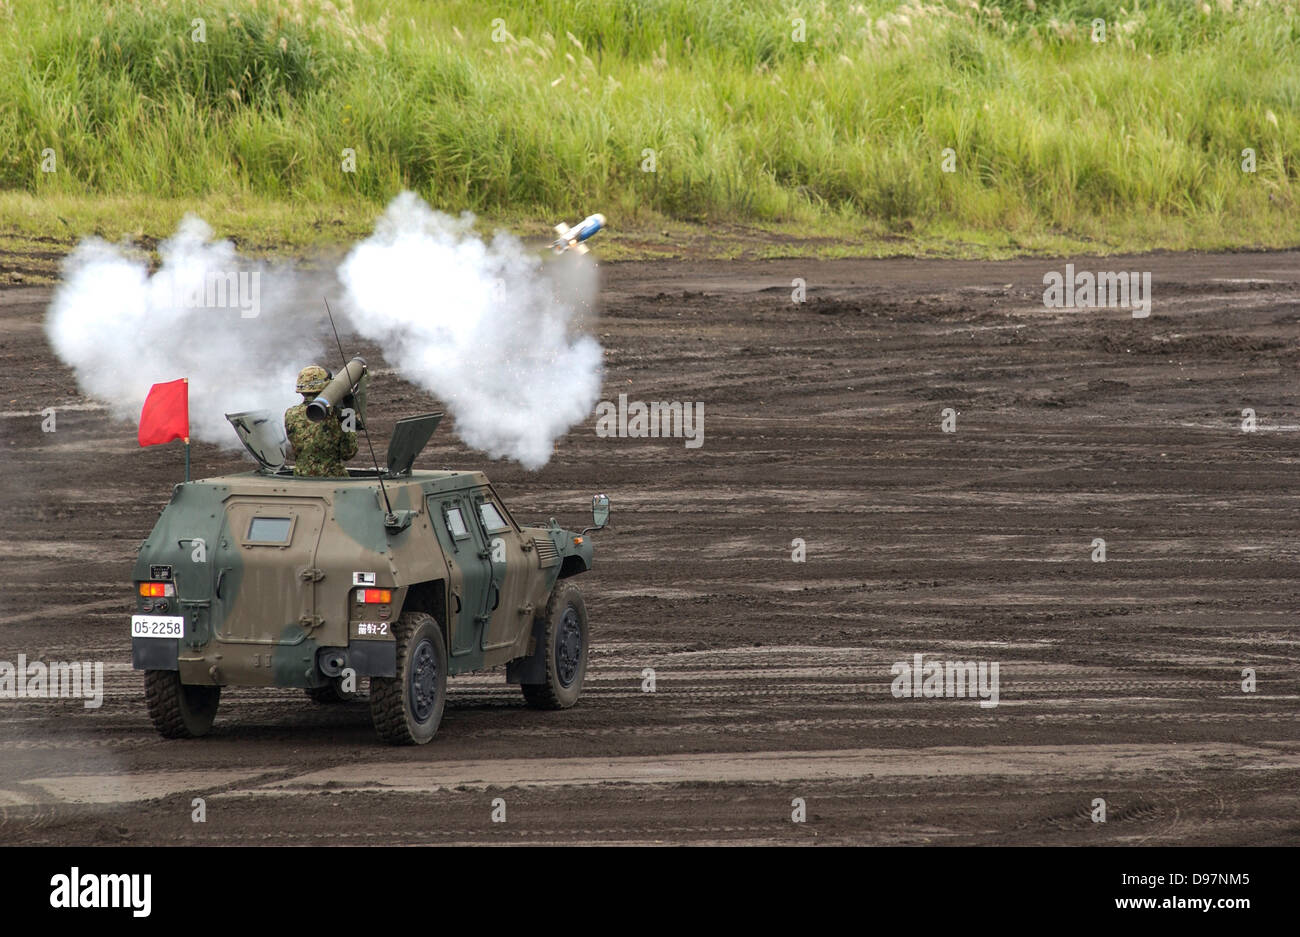 Japan Ground Self-Defense Forces (GSDF) take part in a live fire exercise in Japan Stock Photo